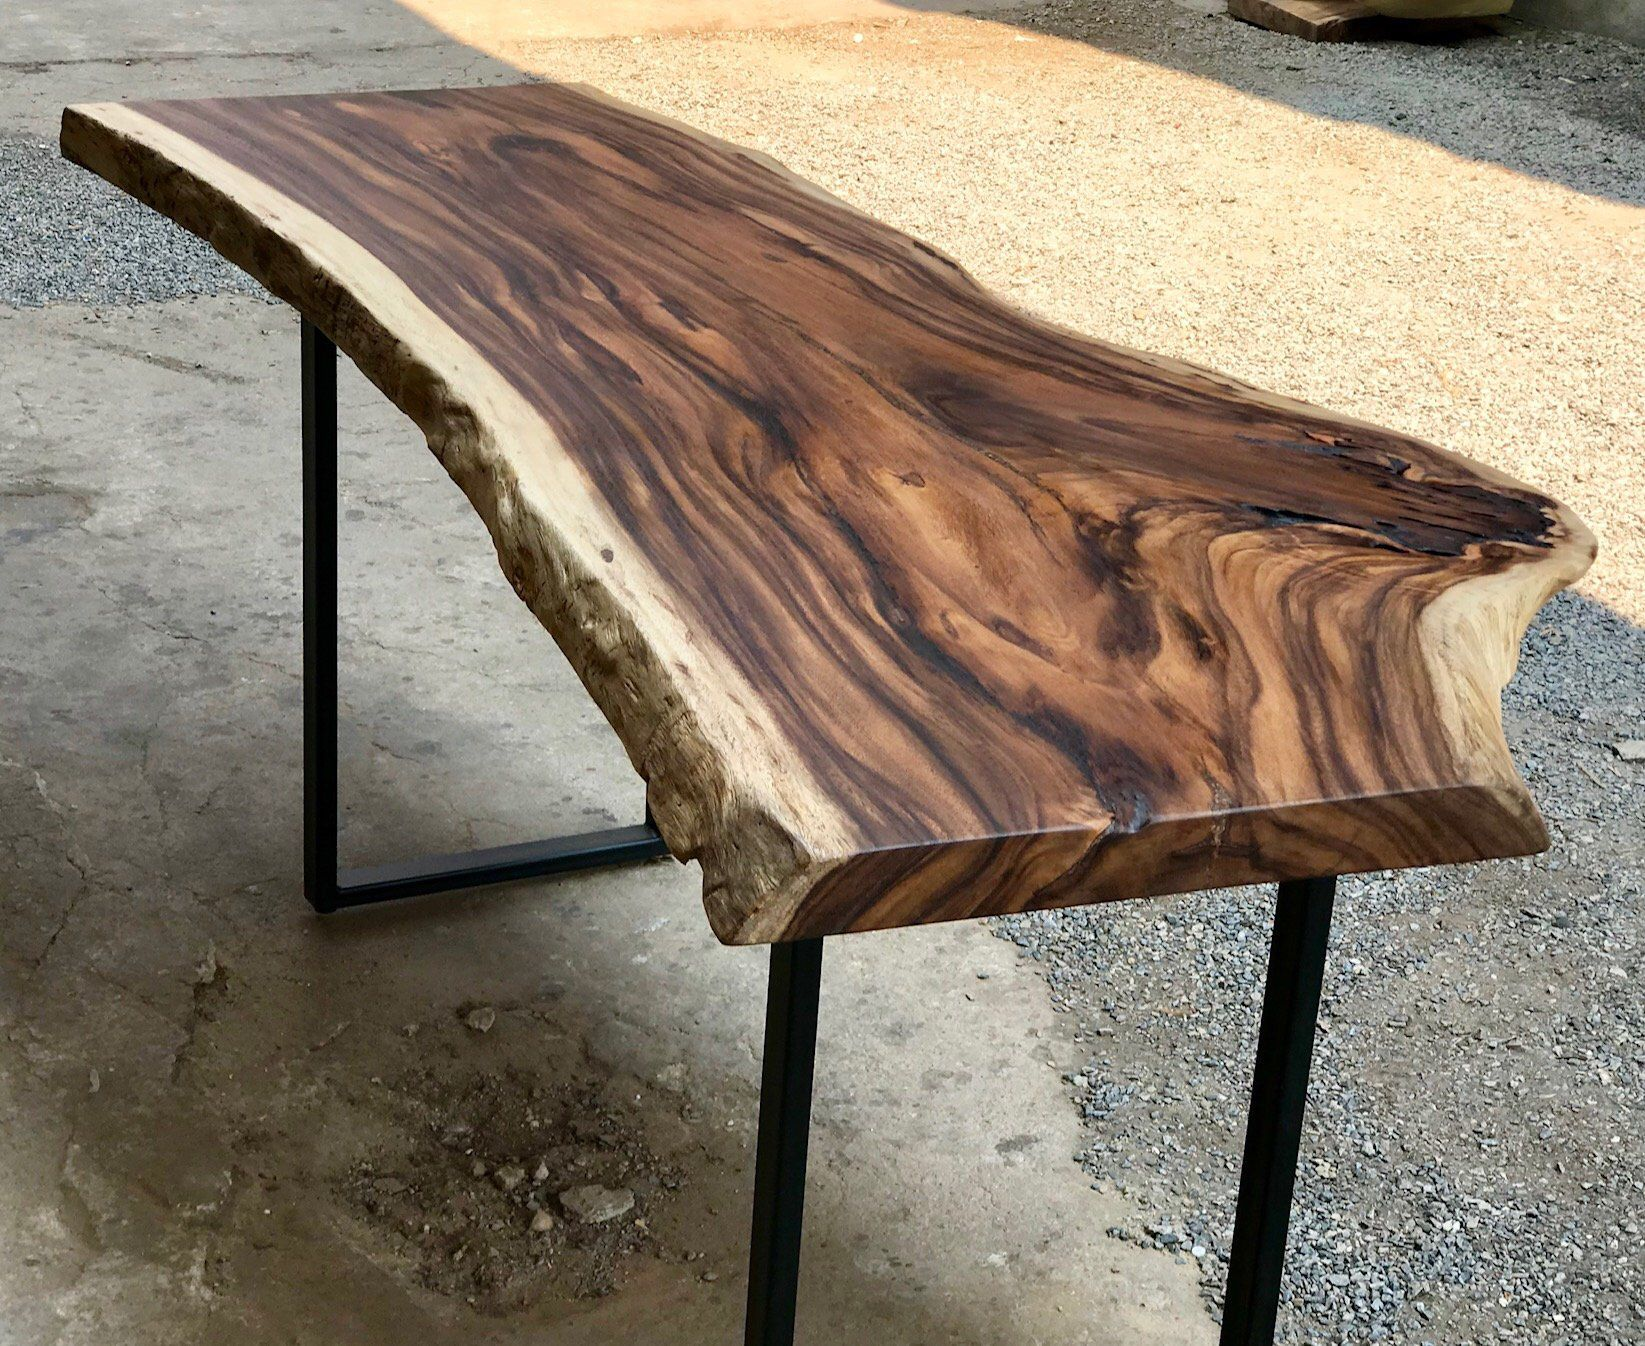 Golden Acacia Reclaimed Live Edge Single Slab Desk Console Etsy In 2020 Slab Desk Live Edge Wood Slab